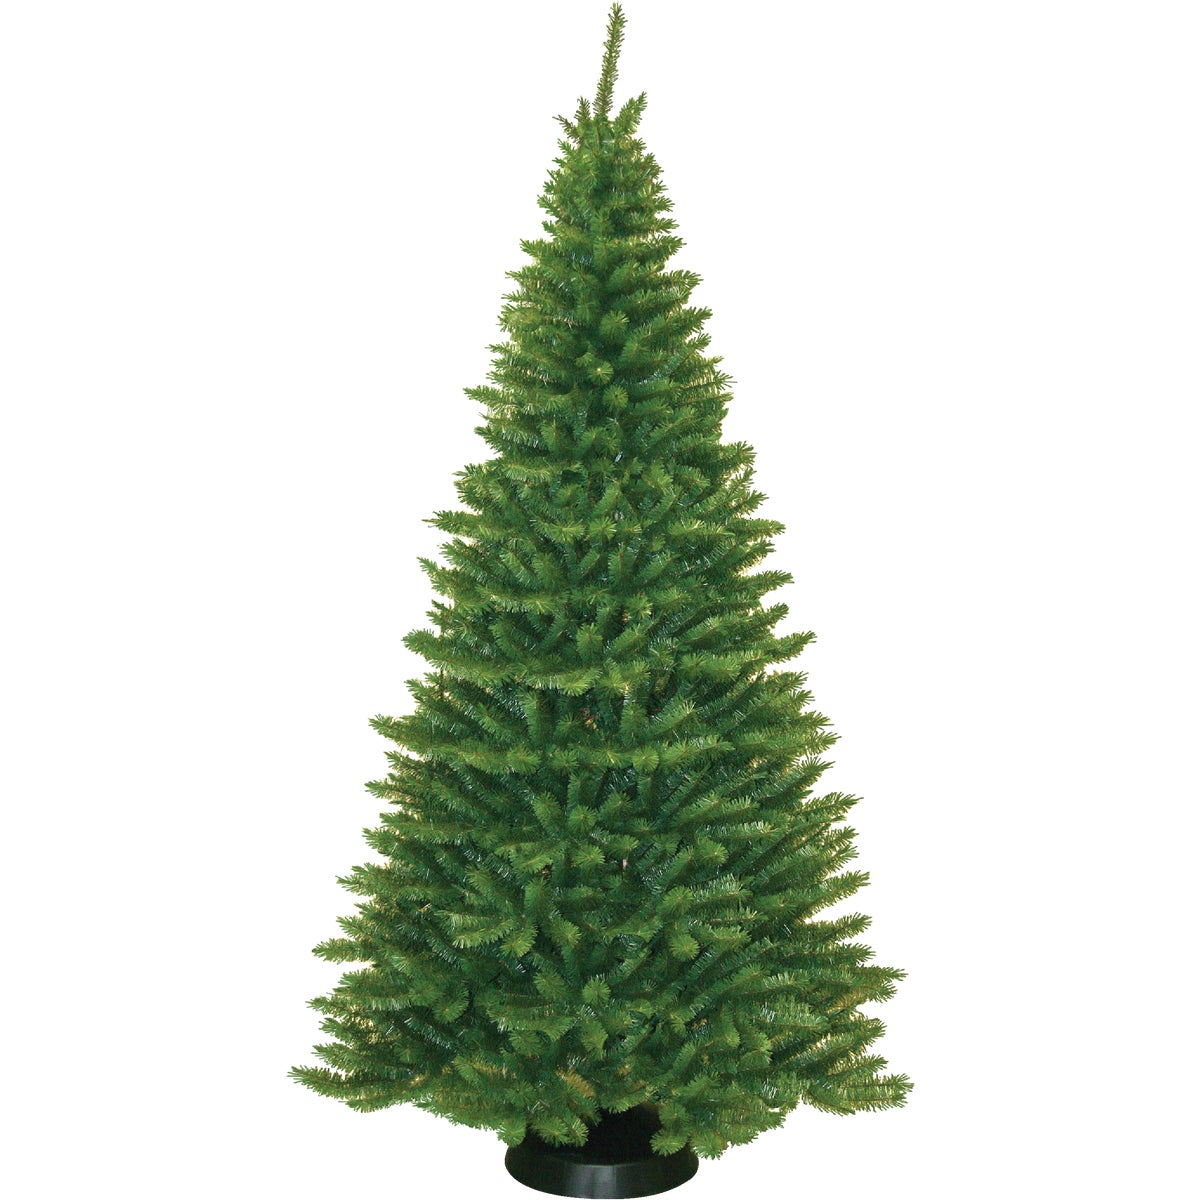 7.5' SLIM MOSS FIR TREE